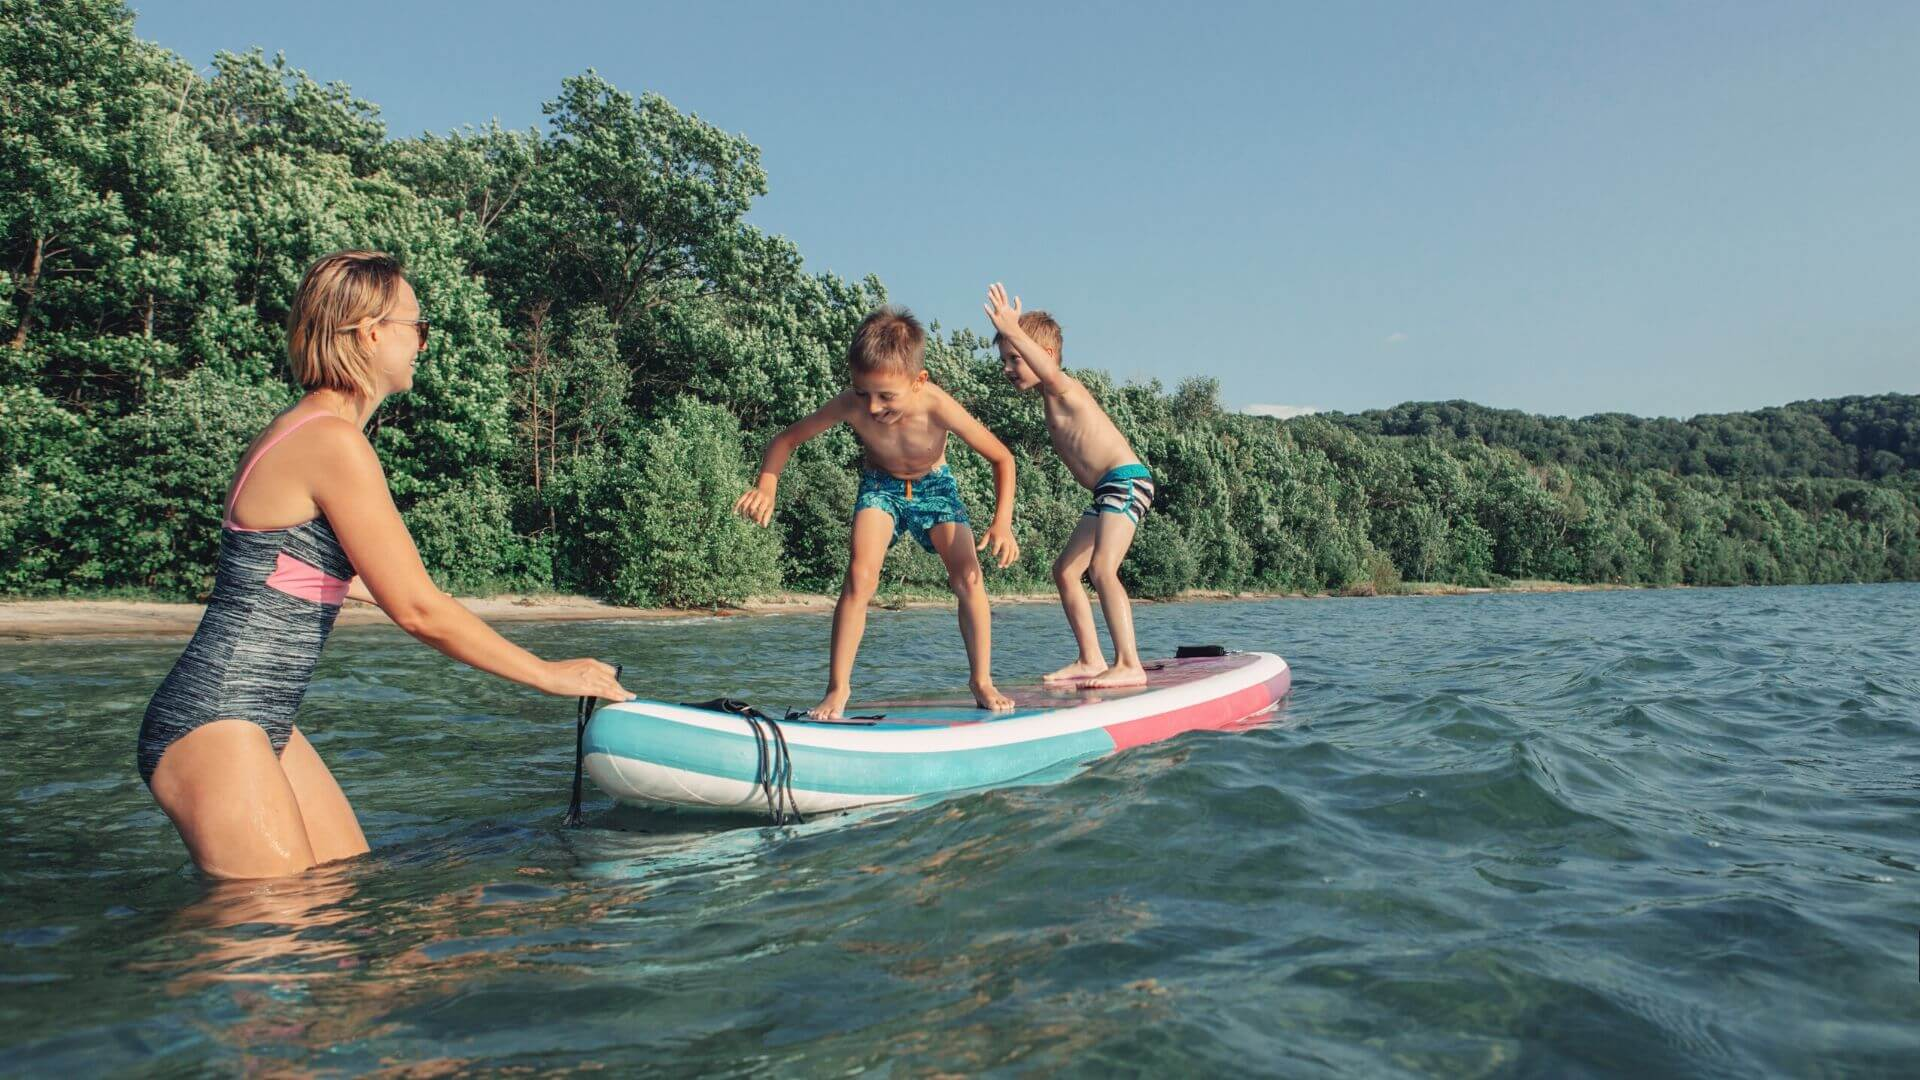 buying an inflatable stand up paddle board